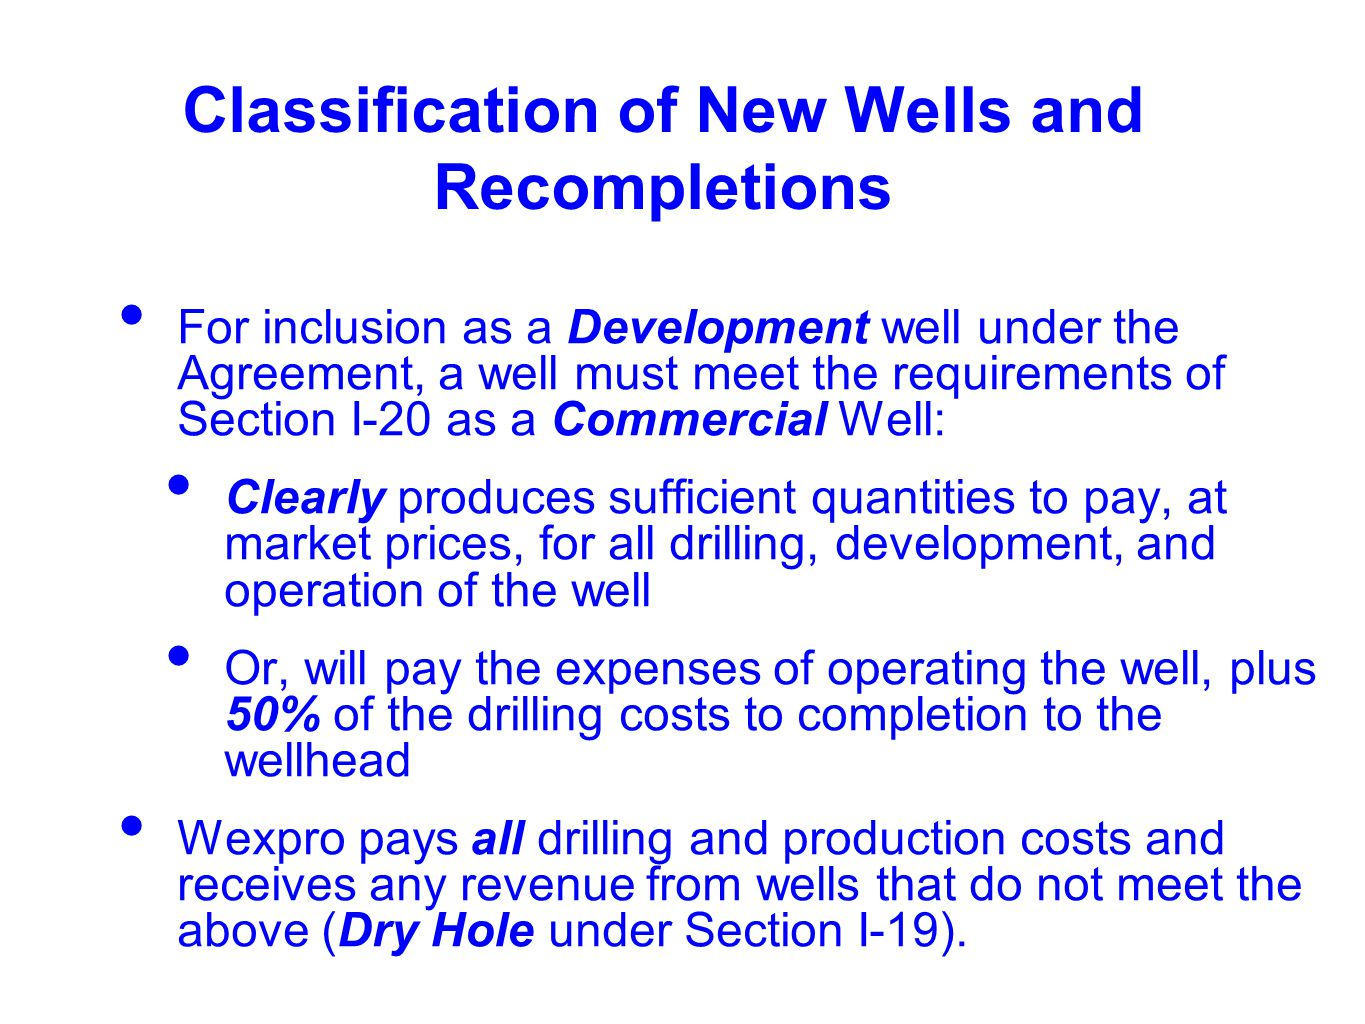 Classification of New Wells and Recompletions For inclusion as a Development well under the Agreement, a well must meet the requirements of Section I-20 as a Commercial Well: Clearly produces sufficient quantities to pay, at market prices, for all drilling, development, and operation of the well Or, will pay the expenses of operating the well, plus 50% of the drilling costs to completion to the wellhead Wexpro pays all drilling and production costs and receives any revenue from wells that do not meet the above (Dry Hole under Section I-19).